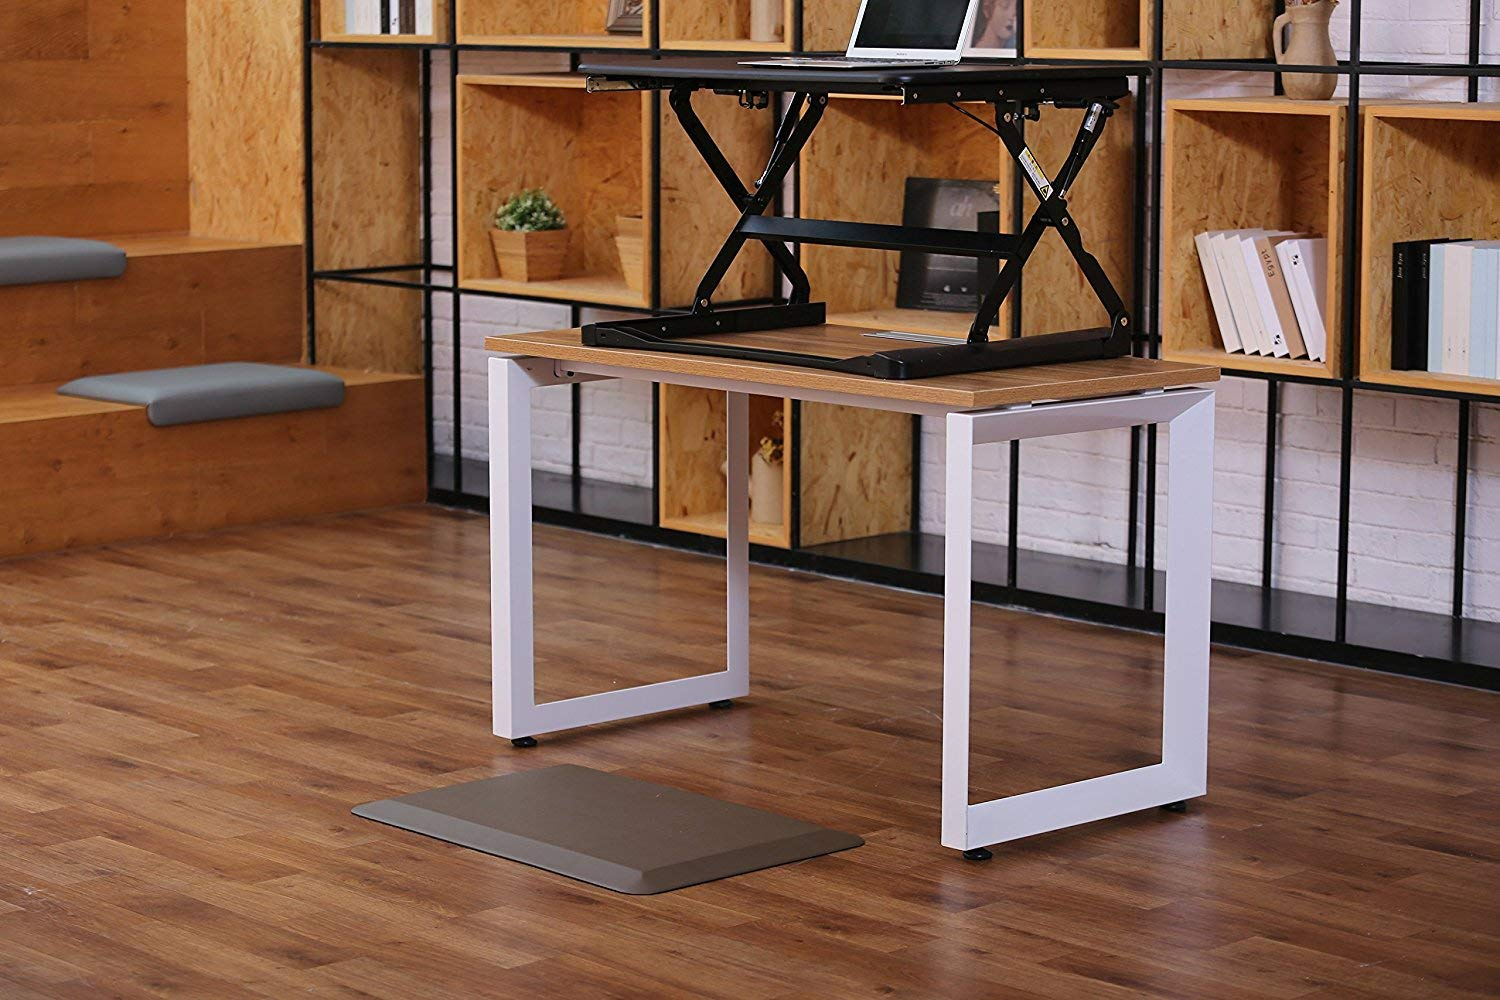 Amcomfy Anti Fatigue Mat Ergonomic Comfort Standing for Office Standing Desk and Kitchen 20 x 30 Black